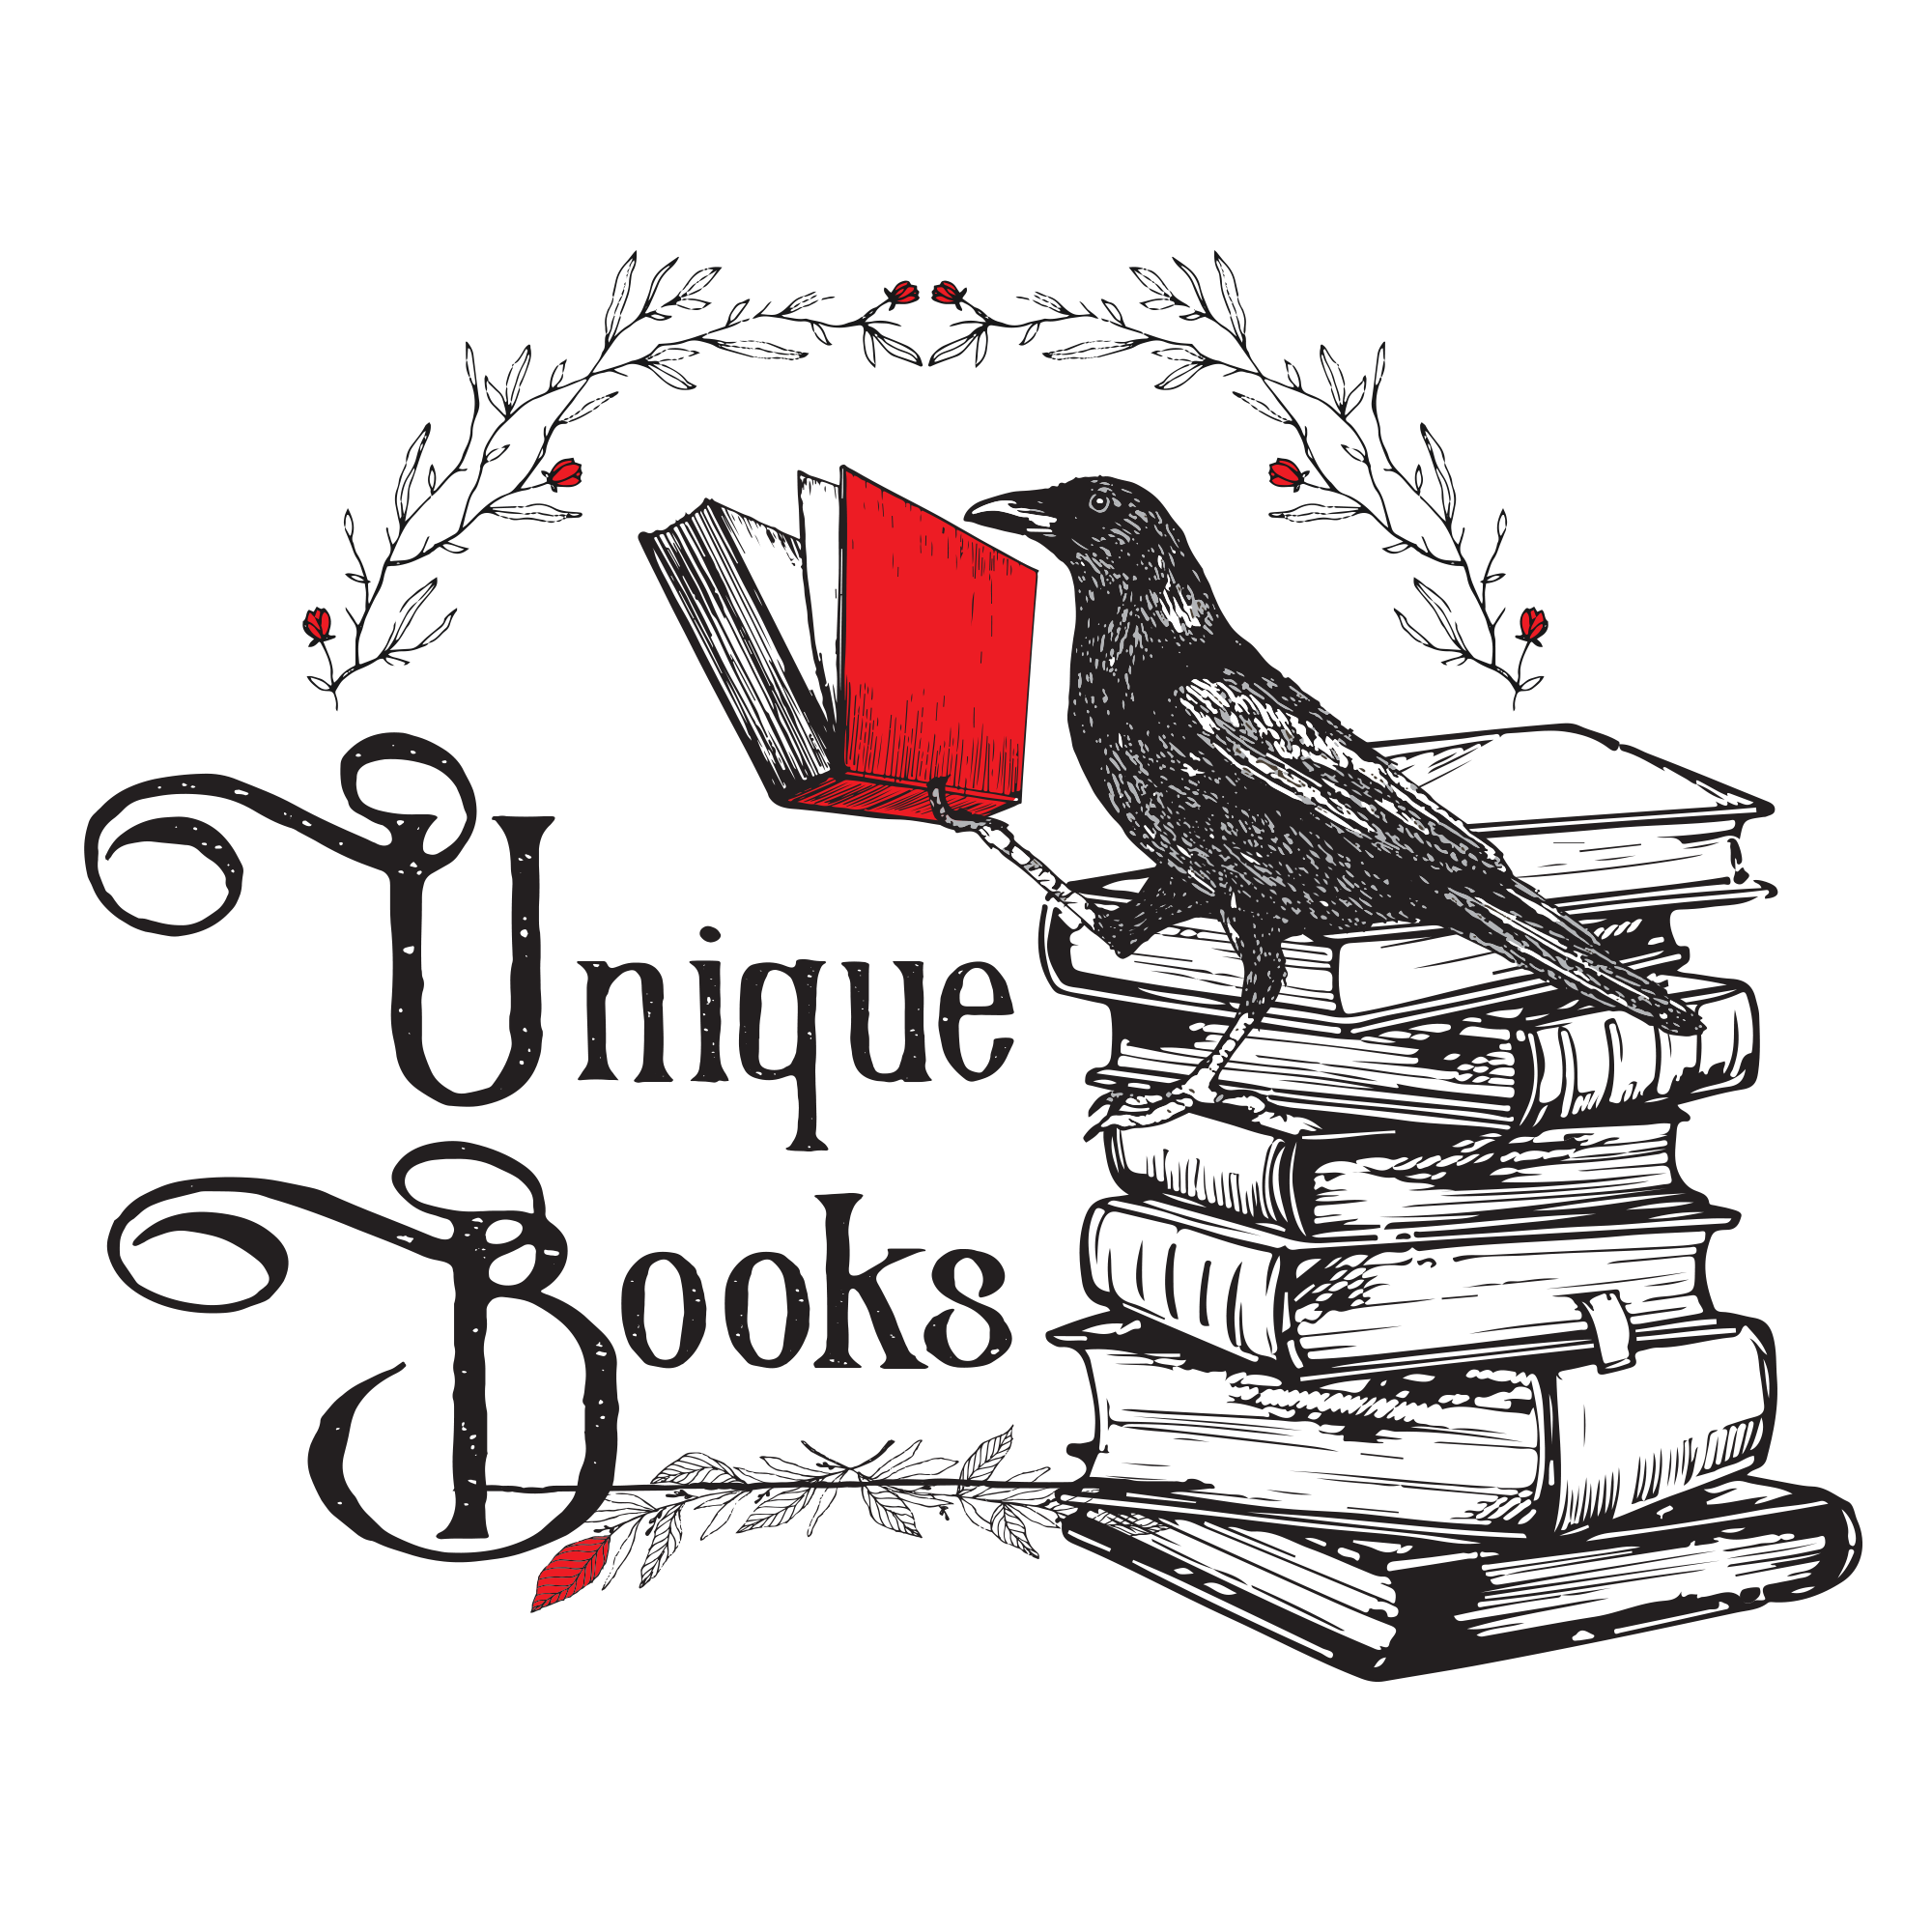 For all your favourite books, with unique and special editions.